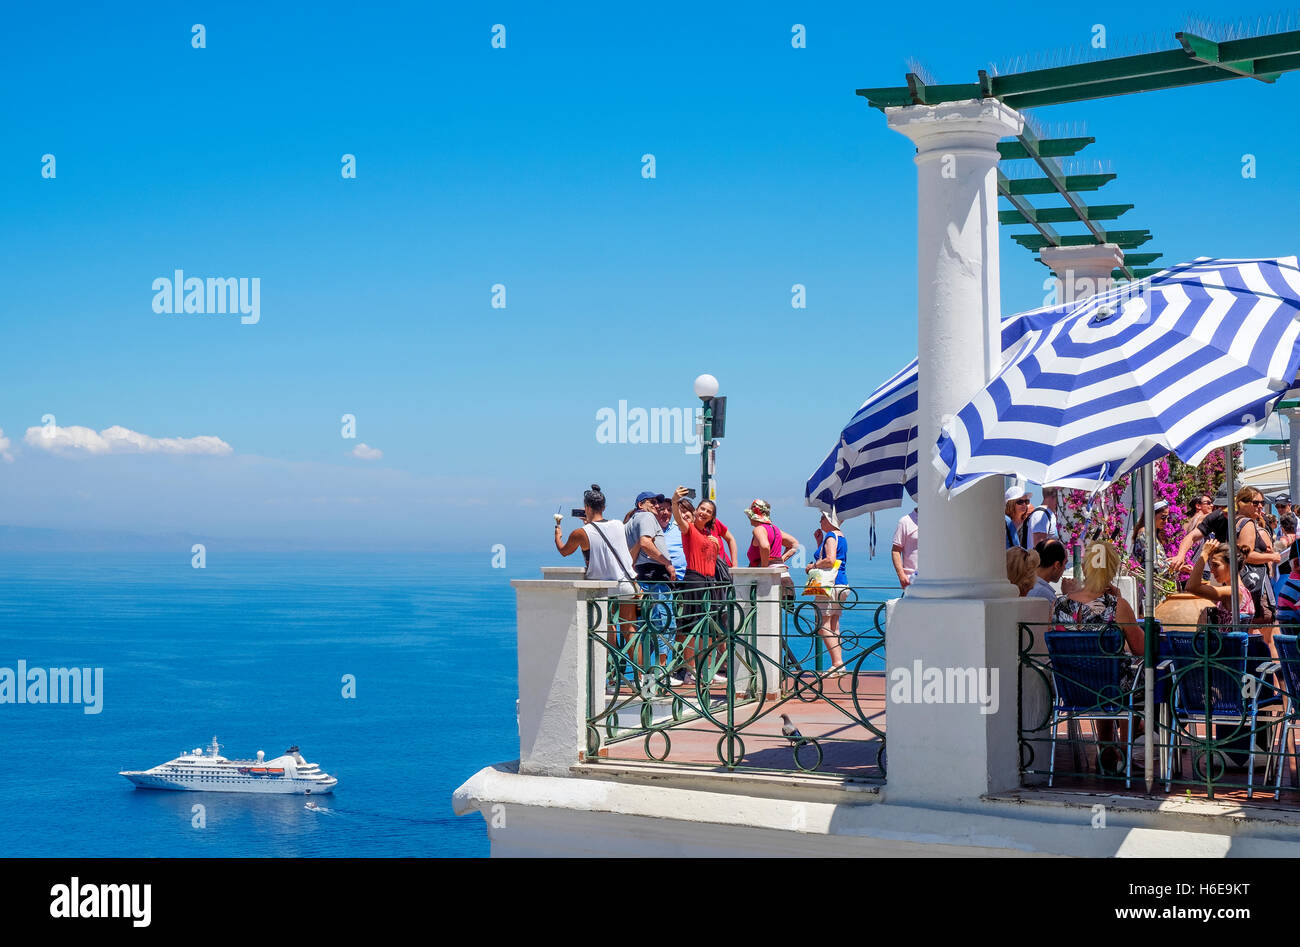 Visitors to the island of Capri looking out over the gulf of Naples, Italy - Stock Image